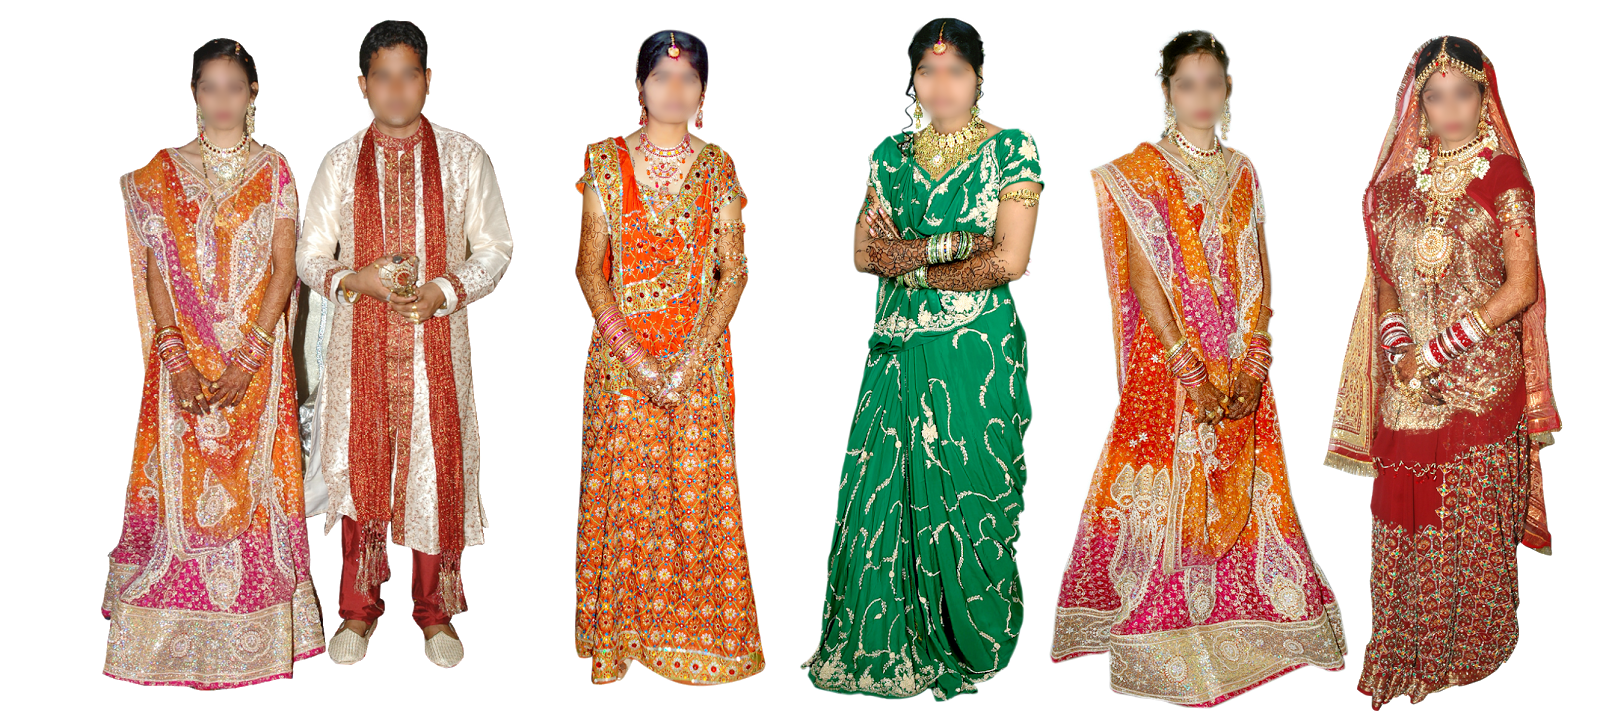 All Psd For Photoshop Indian Ladies Dress Indian Bridal Fashion Indian Bridal Dress